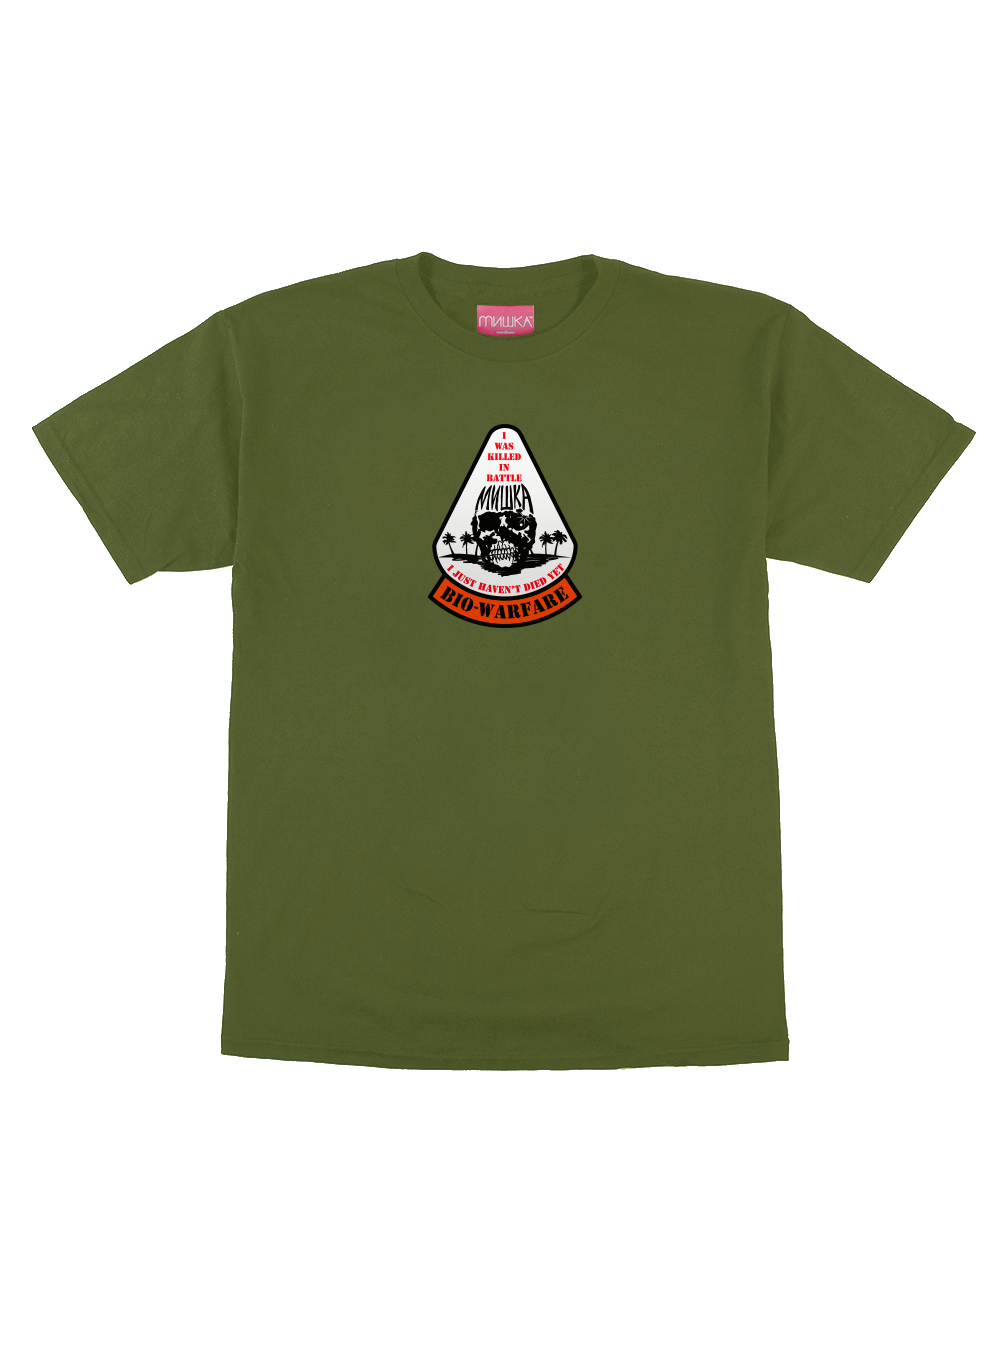 Bio-Warfare T-Shirt